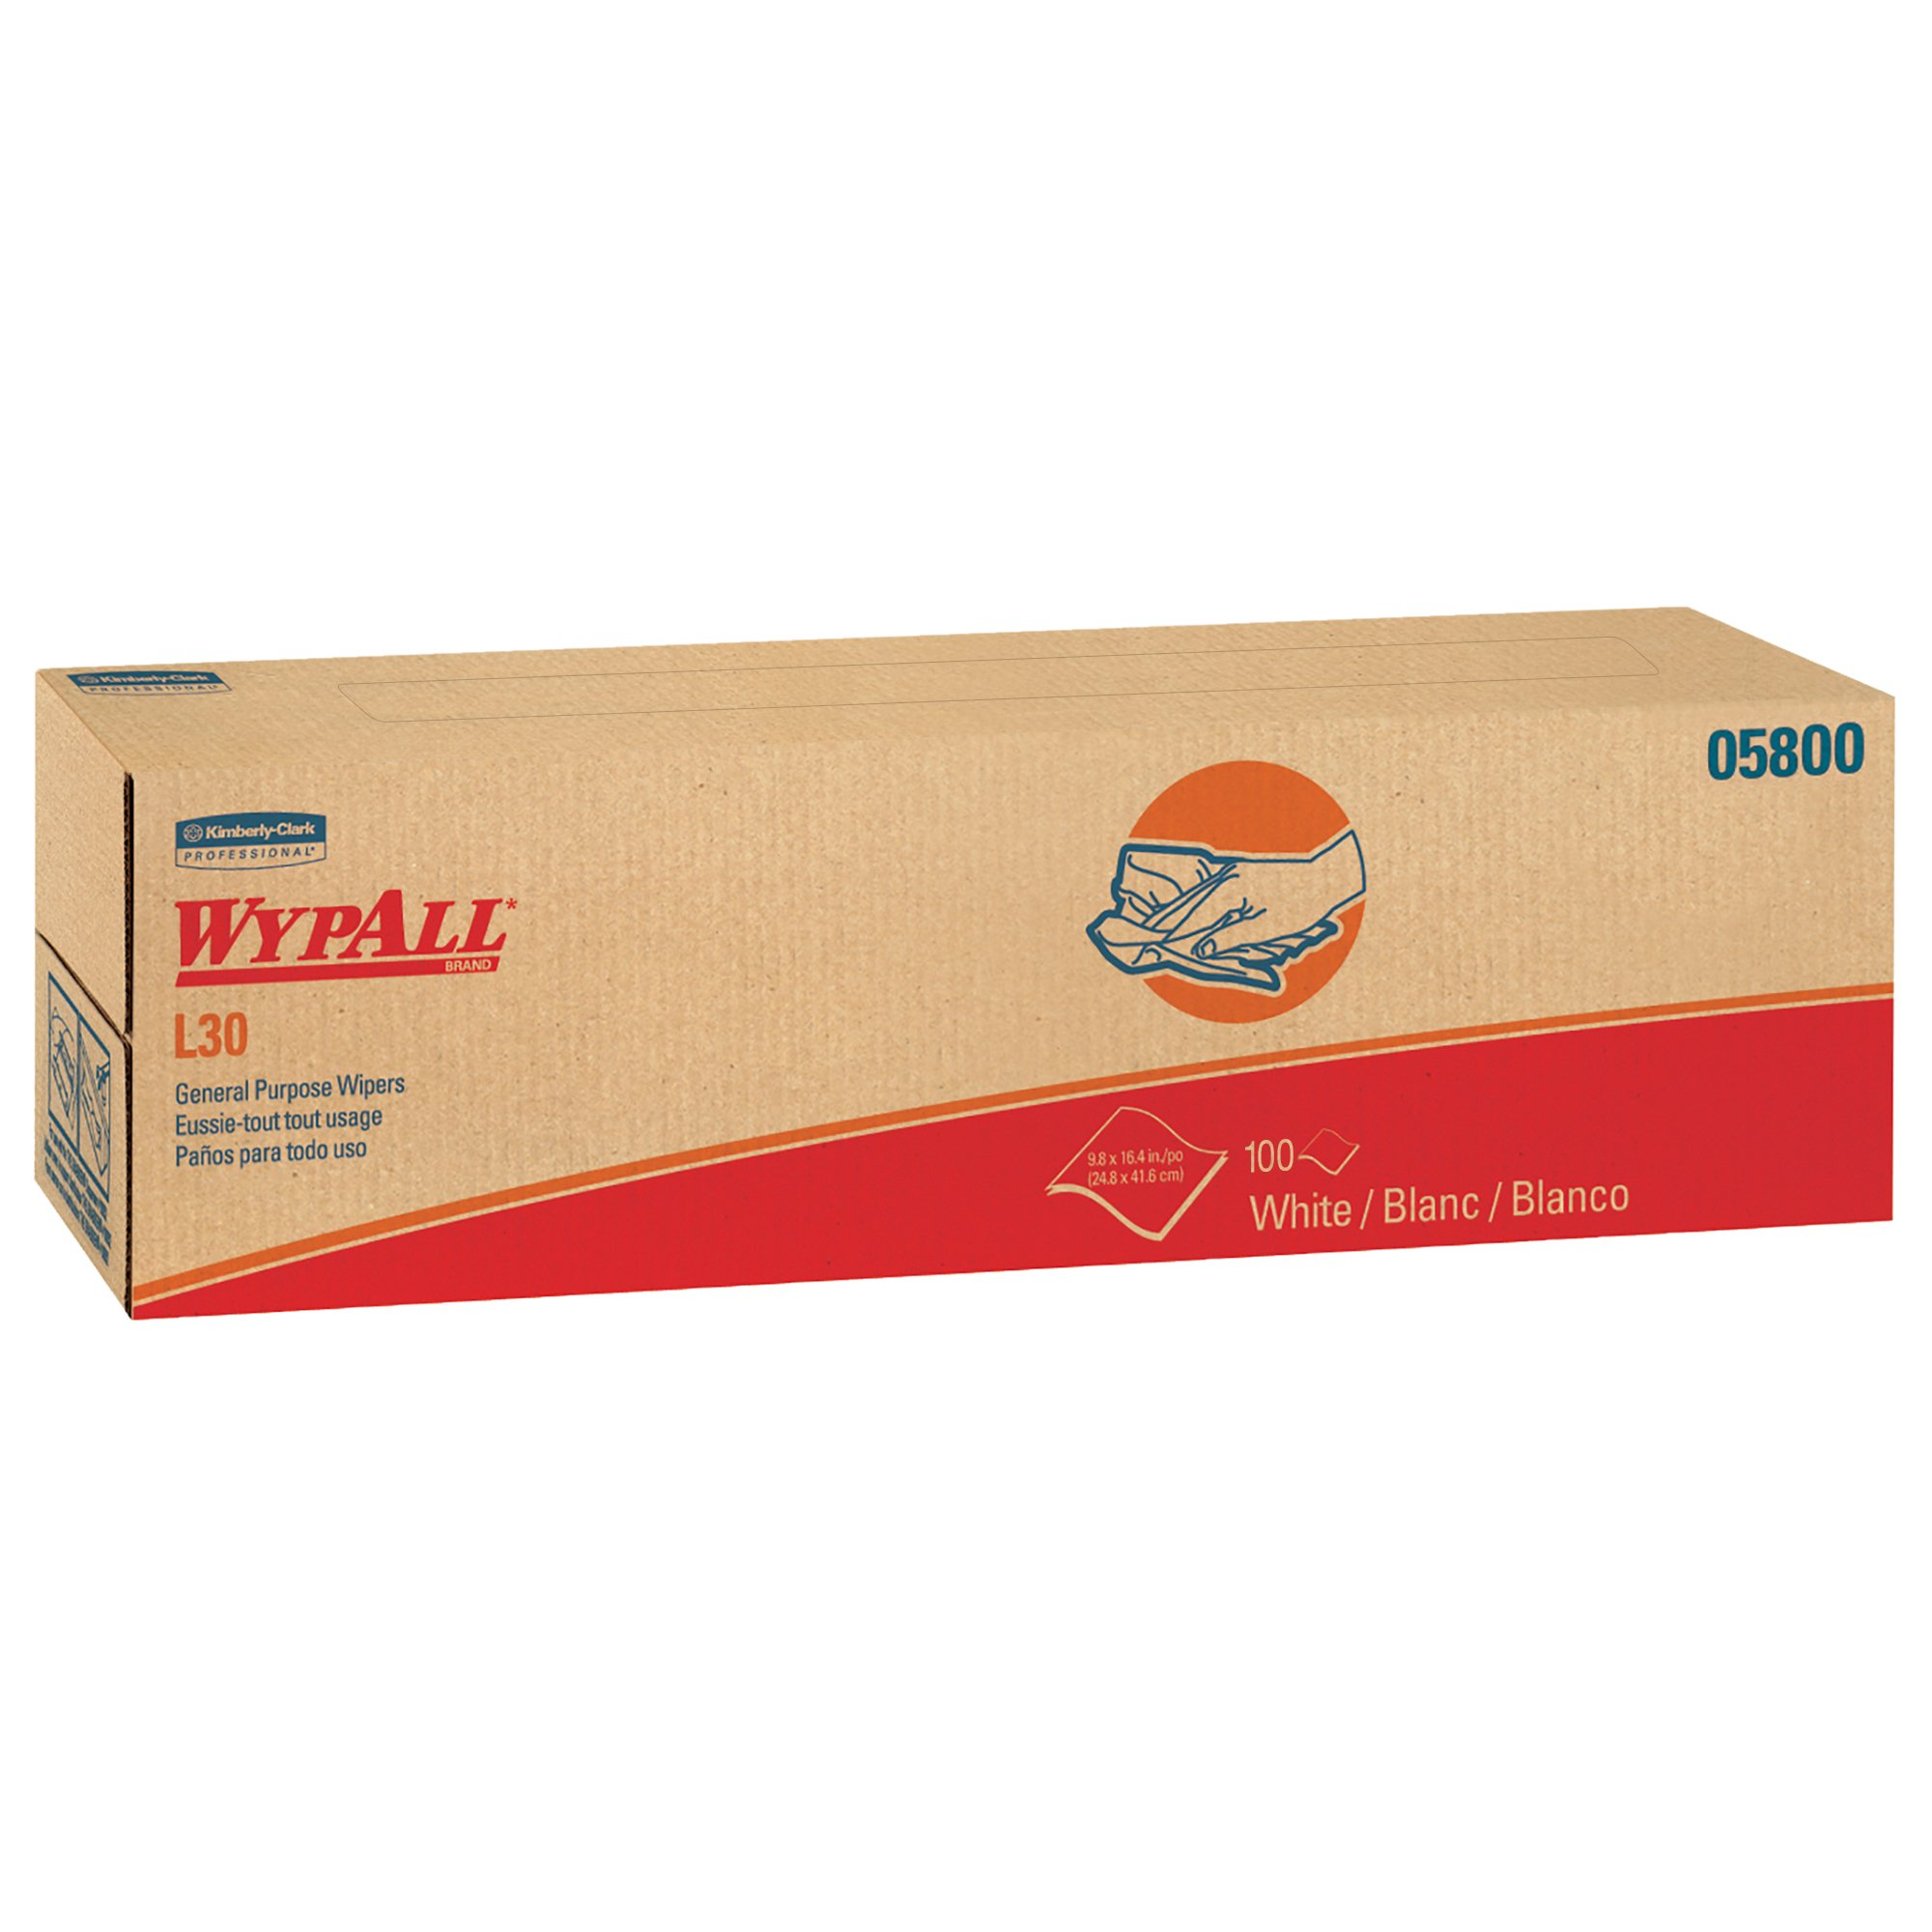 Wypall L30 DRC Towels (05800), Strong and Soft Wipes, White, 100